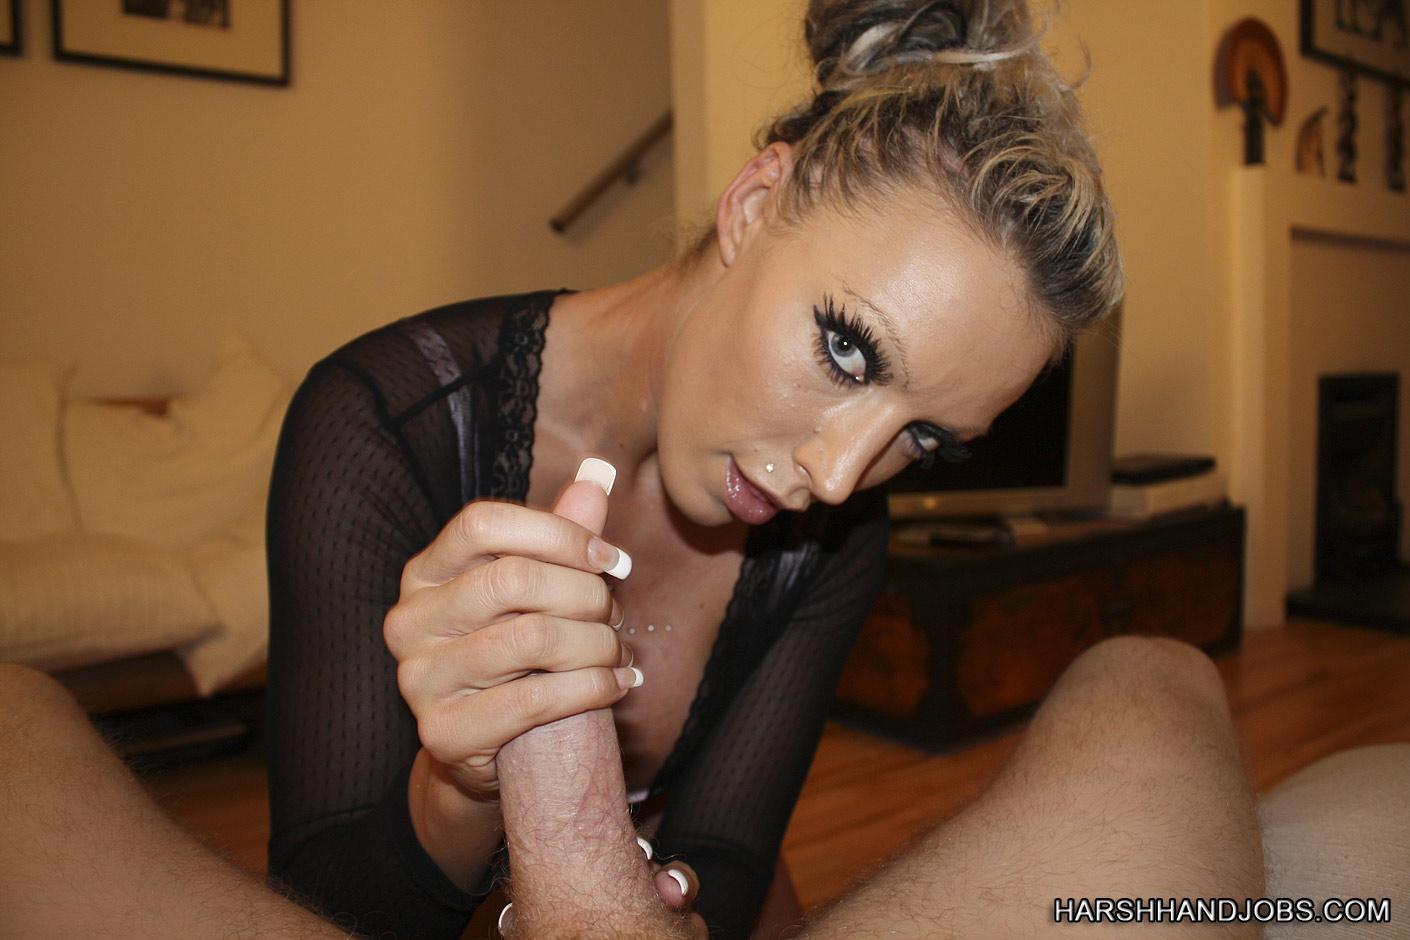 Clip daily free hand job video